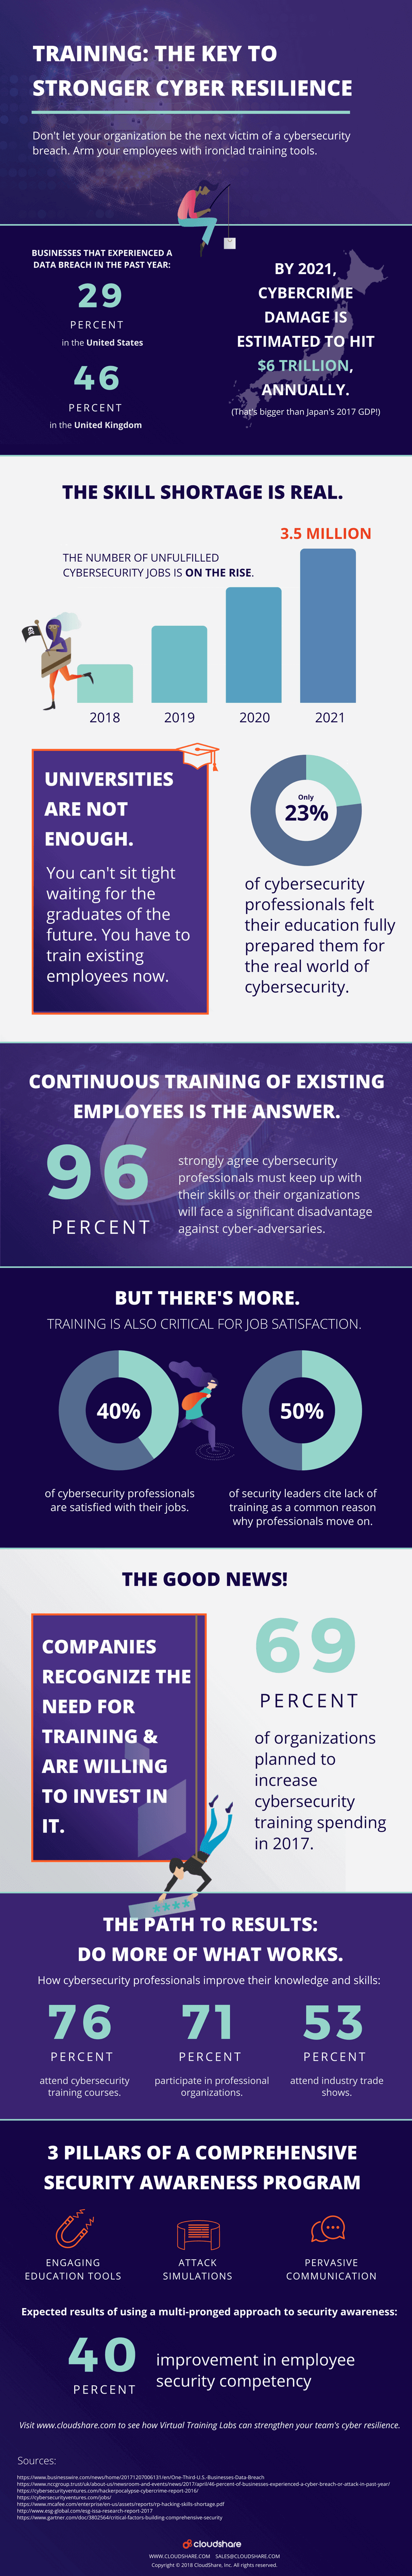 Cybersecurity Infographic - The Key to Stronger Cyber Resilience (1)